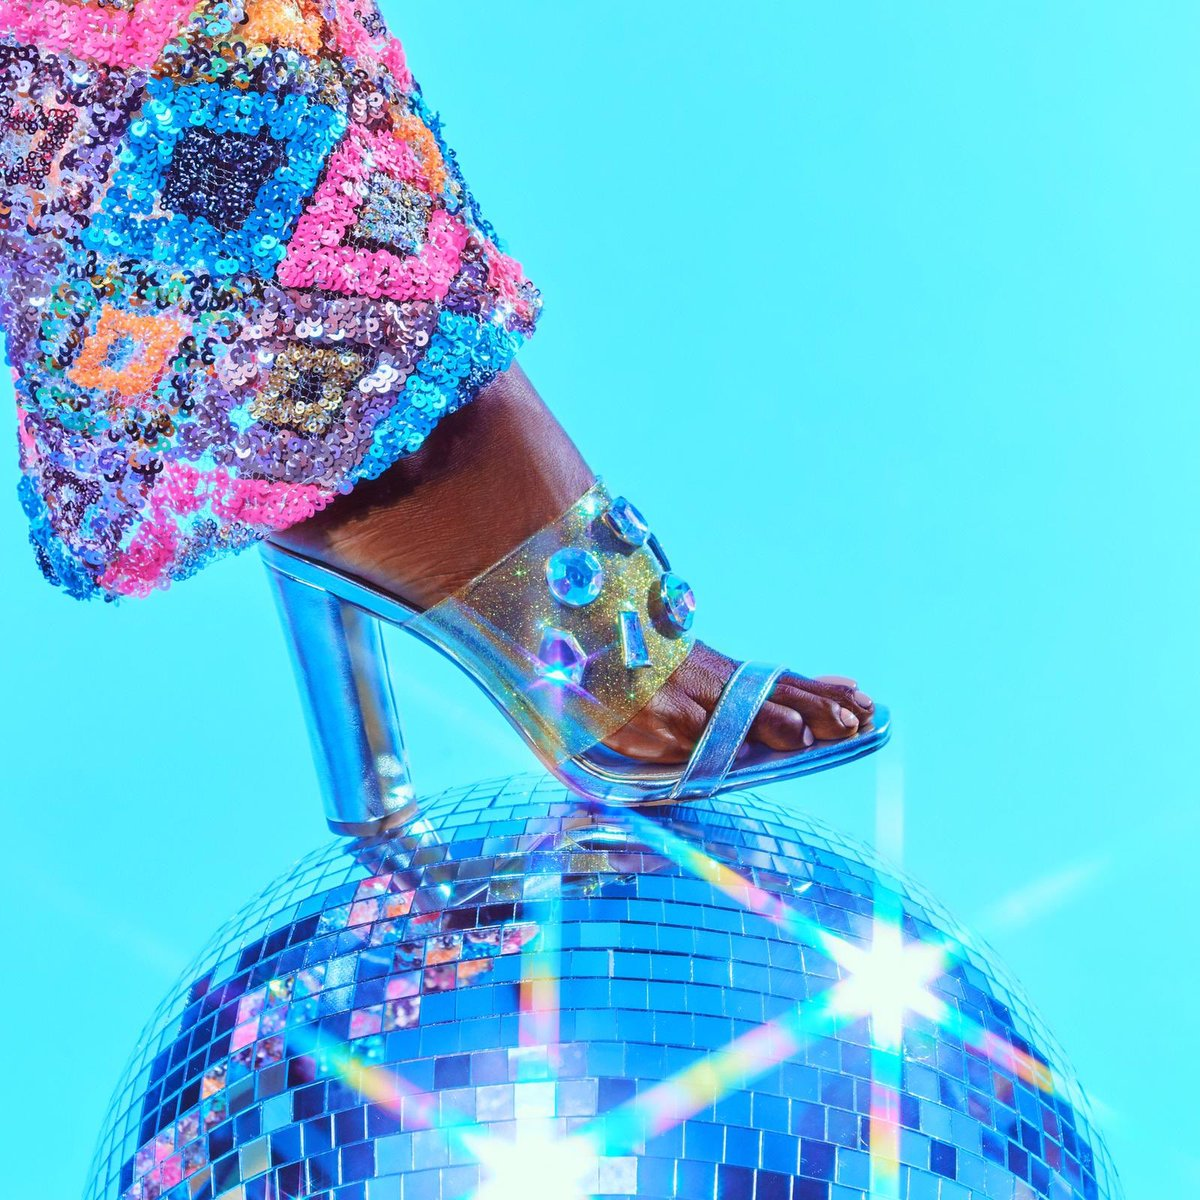 Ignite the (disco) light & let it shine for your 4th of July lewk 🎆🎇 dont forget that 10% from the sale of every shoe and handbag from the @kpcollections website will go to @PointFoundation to support their efforts in empowering more BIPOC LGBTQ+ students #shoesdaytuesday